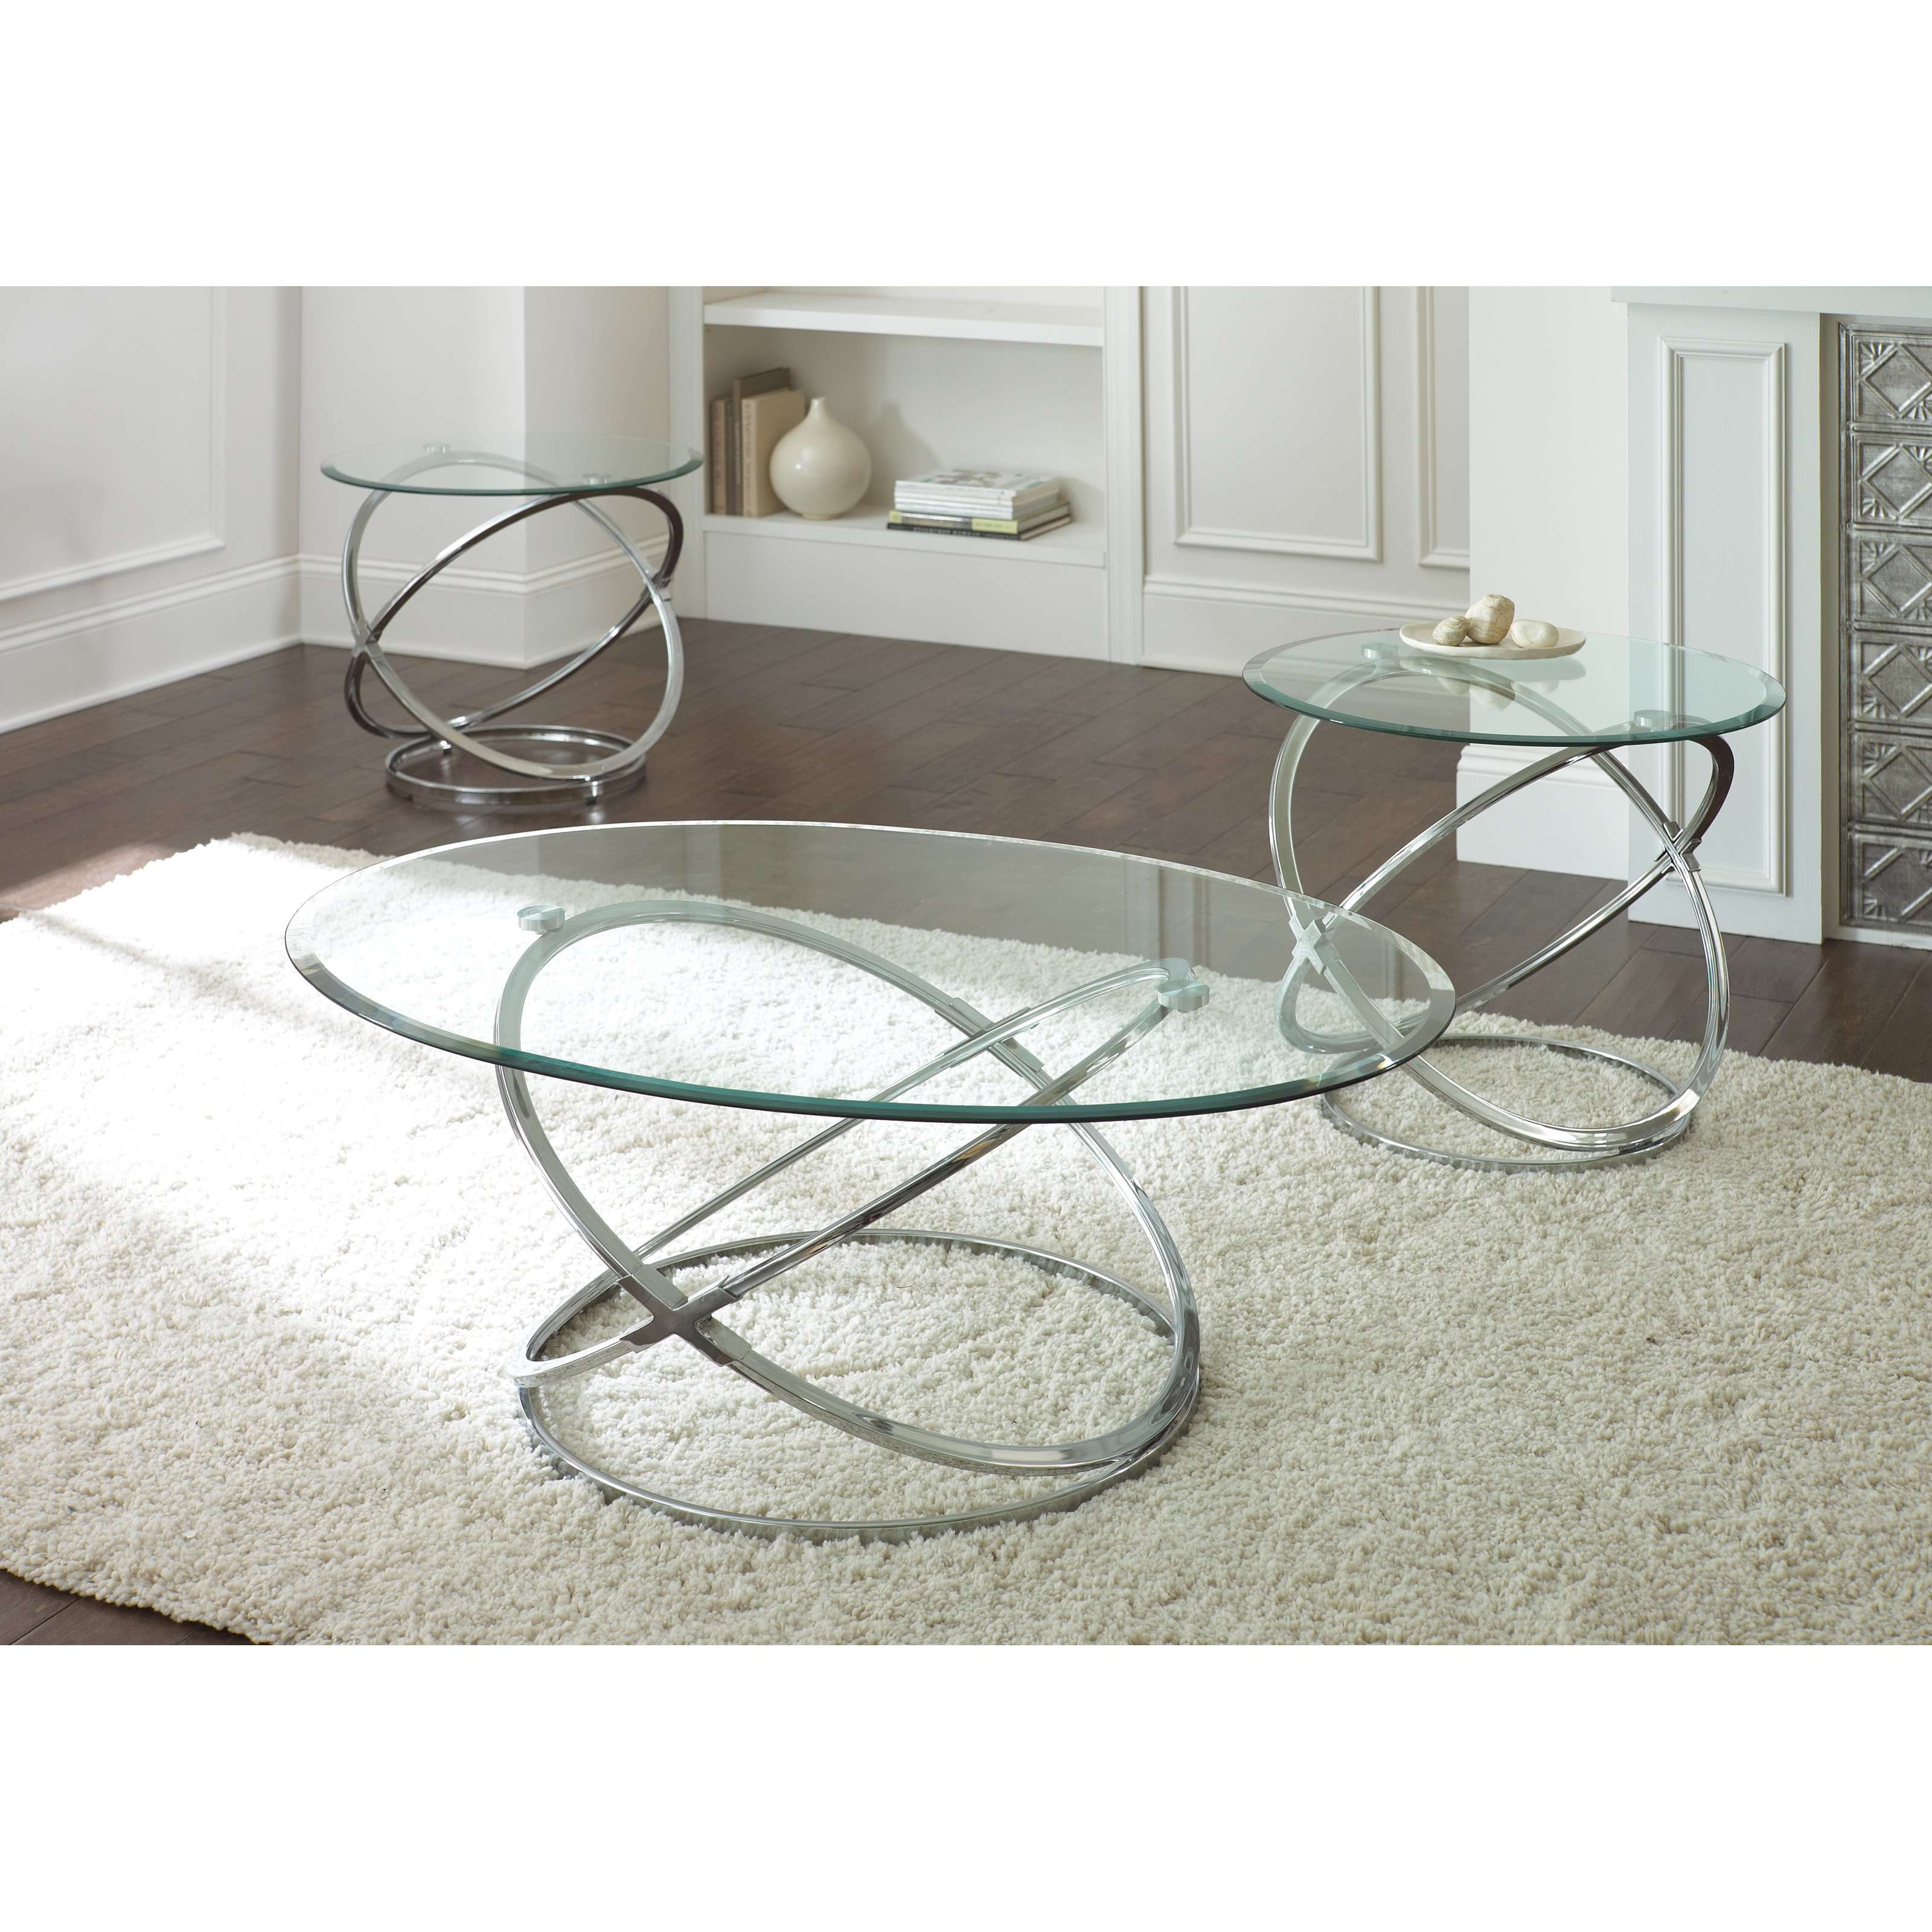 Steve Silver Orion Oval Chrome And Glass Coffee Table Set Intended For Most Recent Chrome Coffee Tables (View 18 of 20)